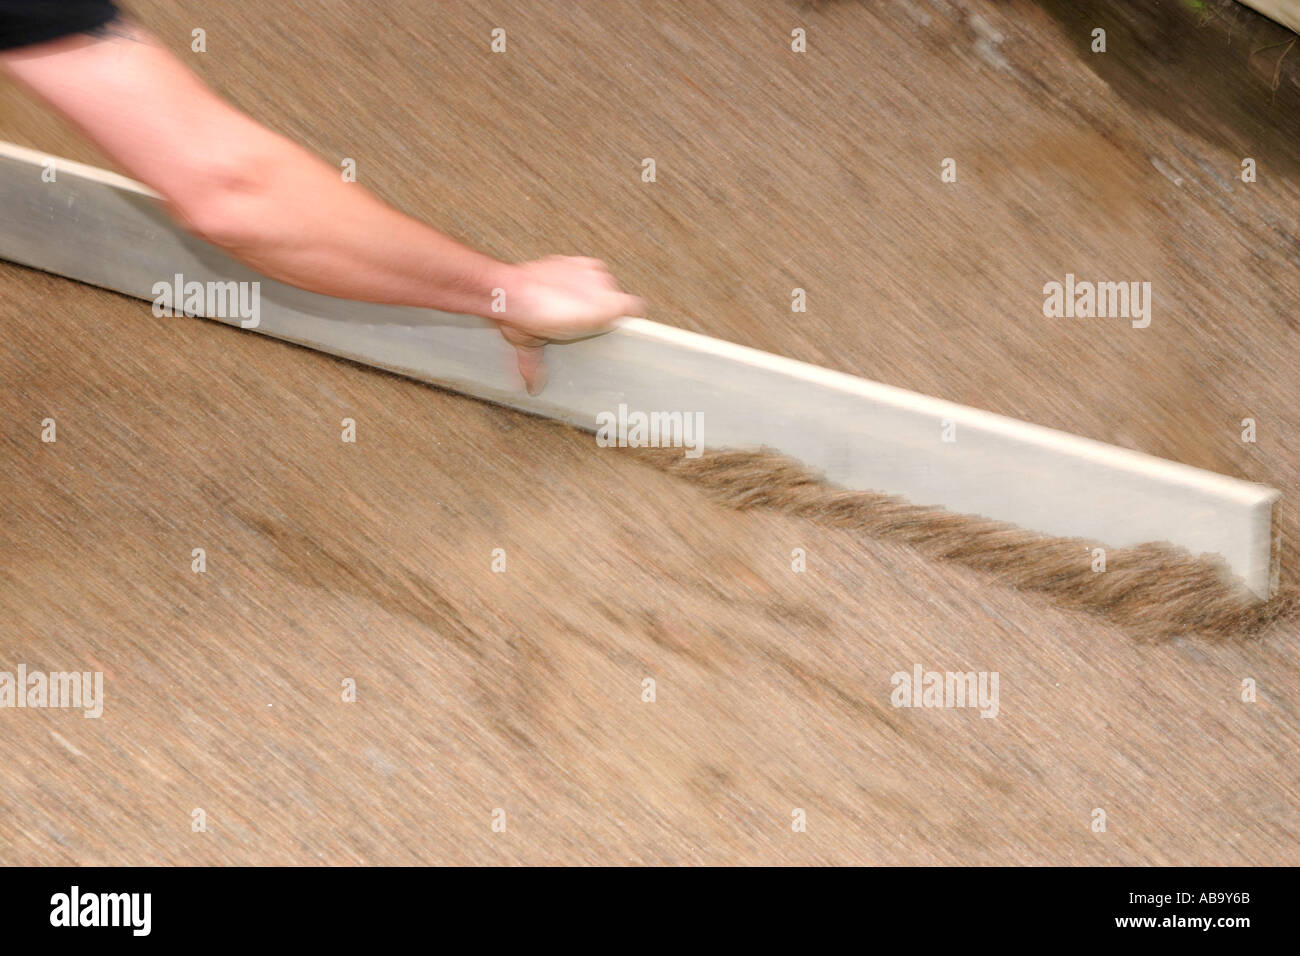 Leveling out sand with a metal plank Stock Photo